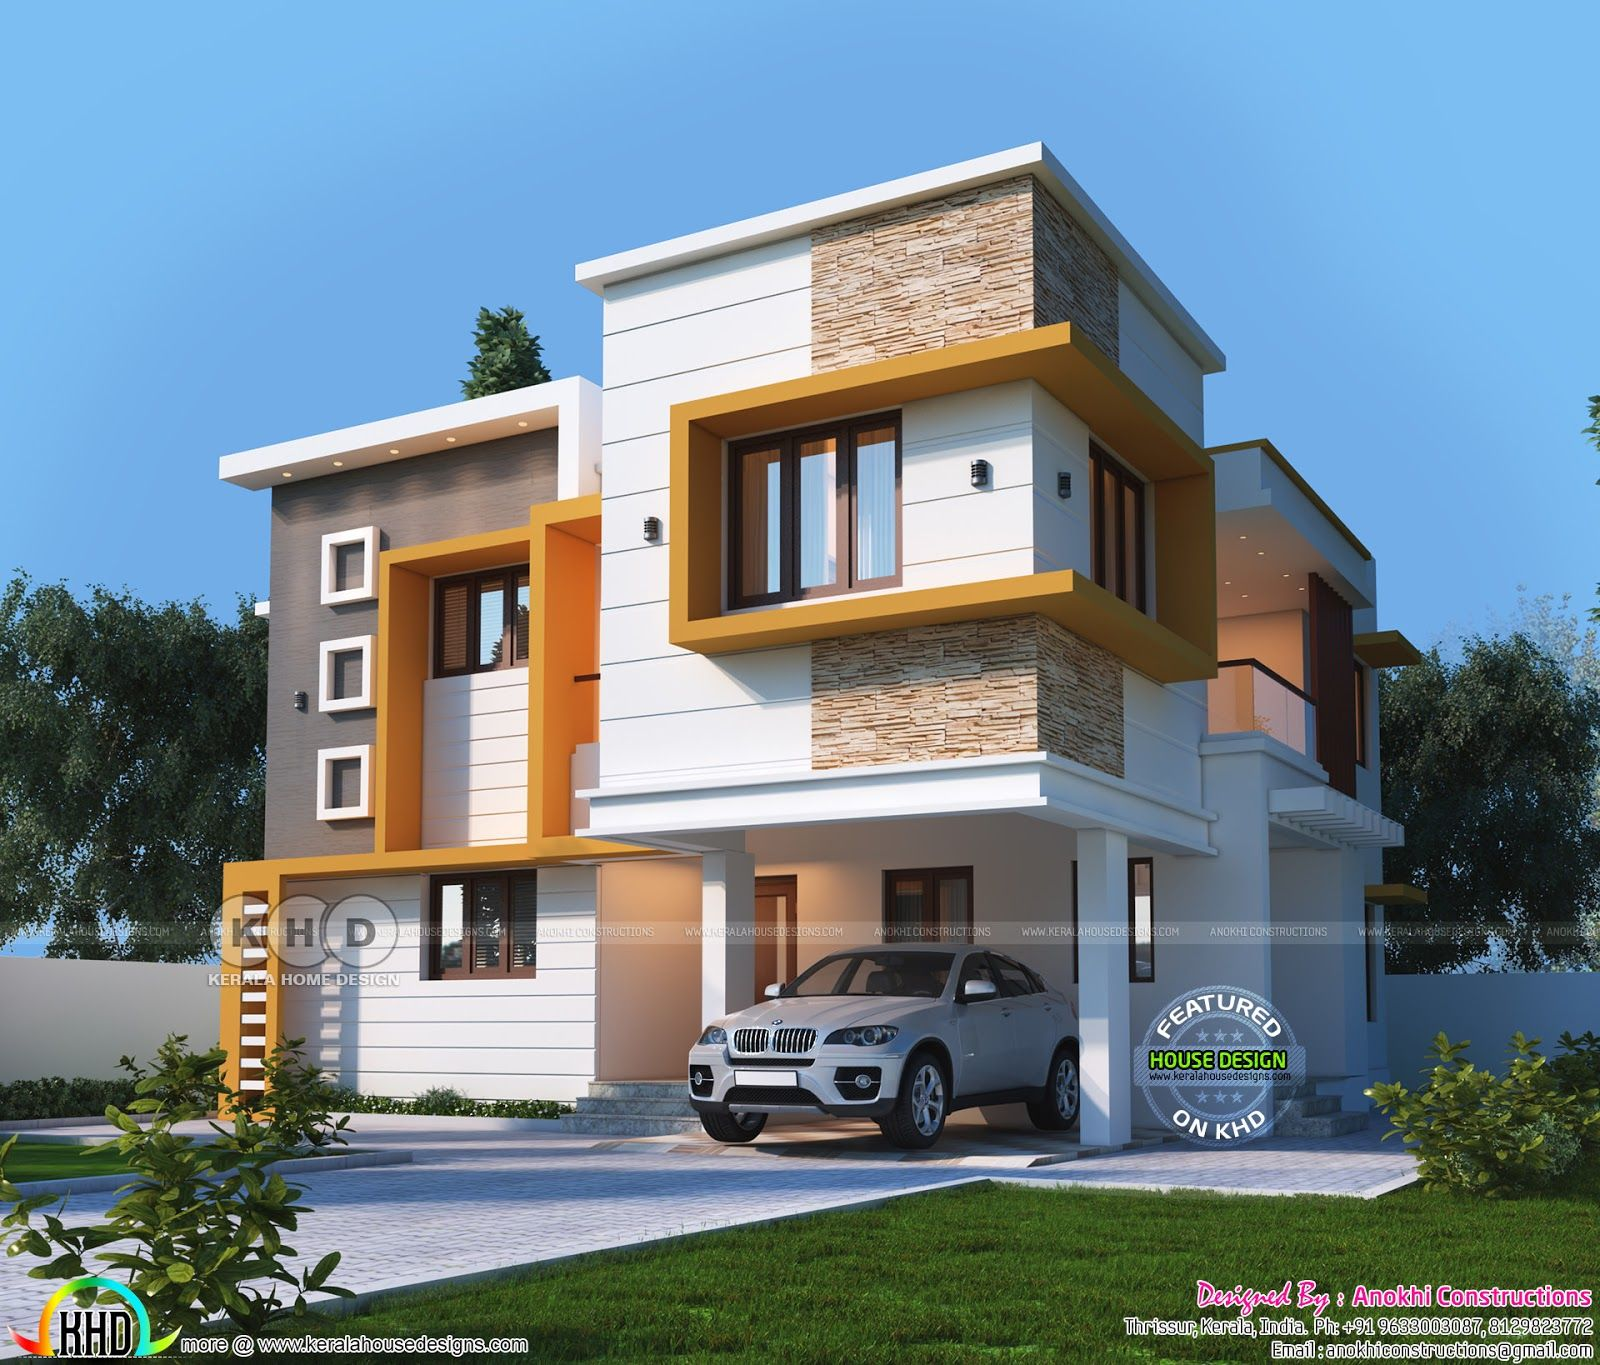 2280 space saving duplex villa plan villa plan duplex on small modern home plans design for financial savings id=85428